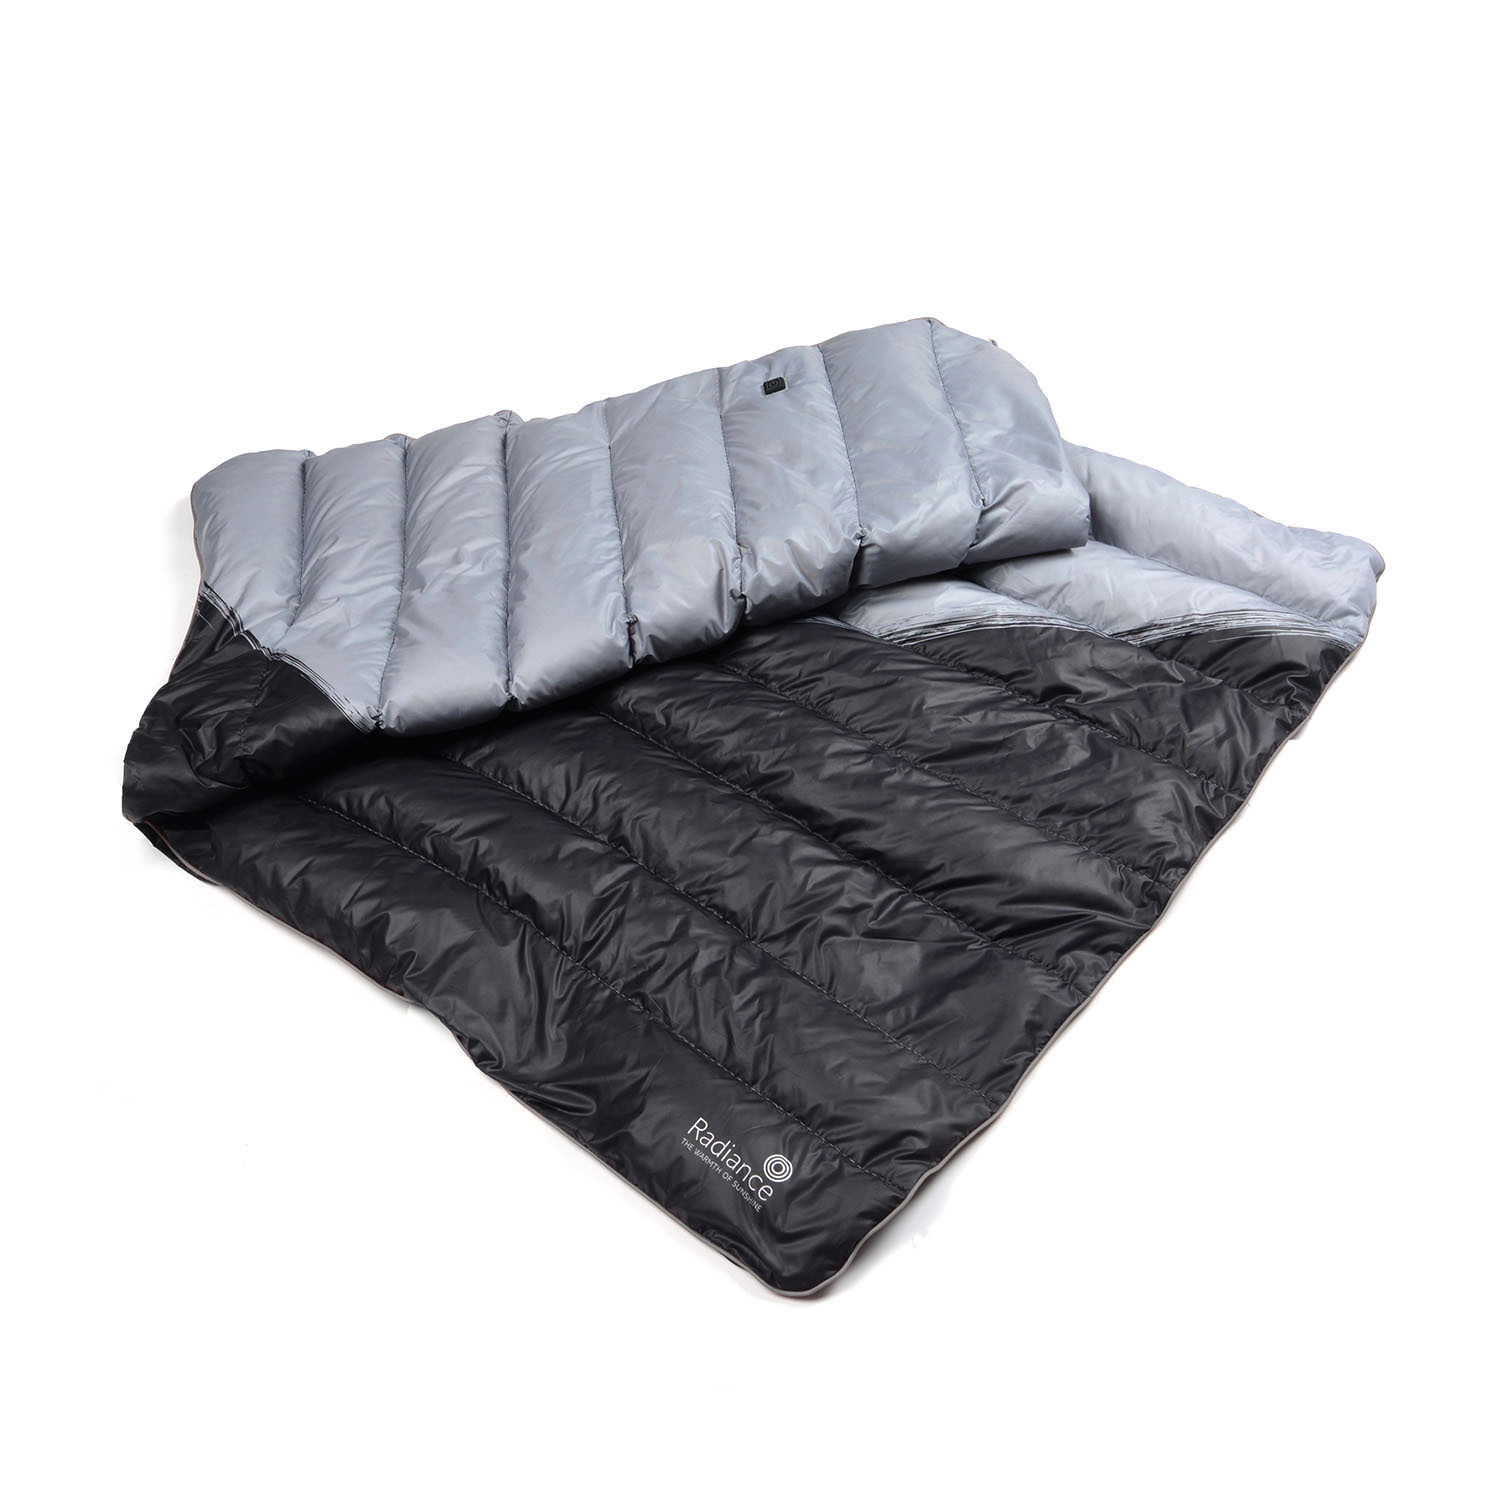 Goose Down Outdoor Heated Blanket Black Large